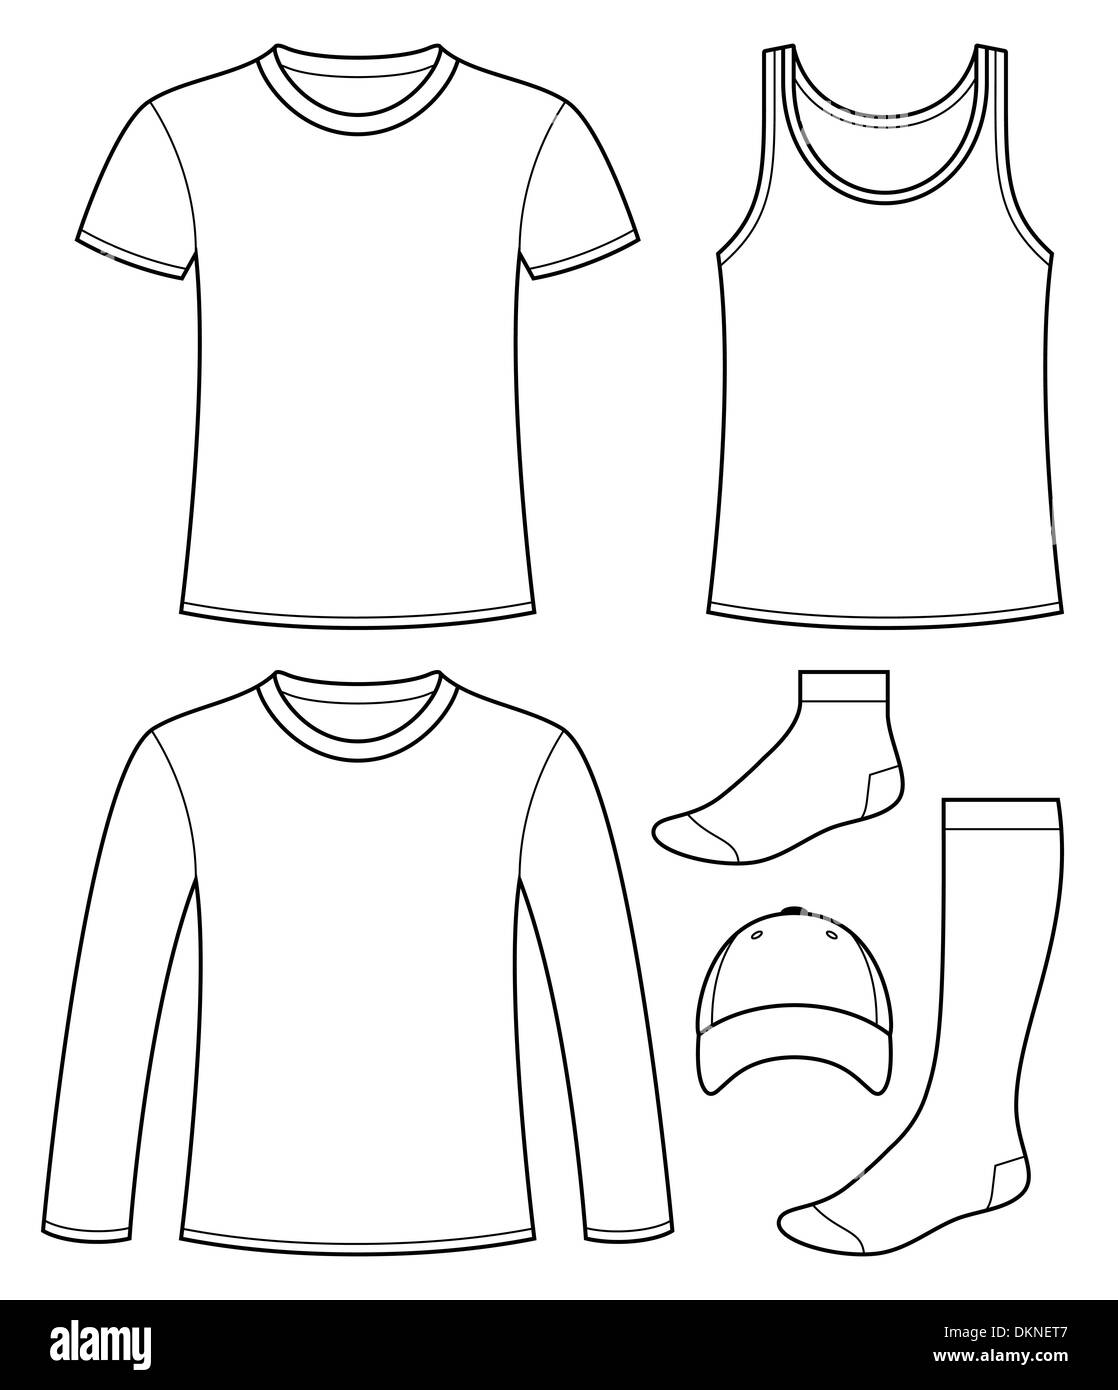 singlet t shirt long sleeved t shirt cap and socks template stock